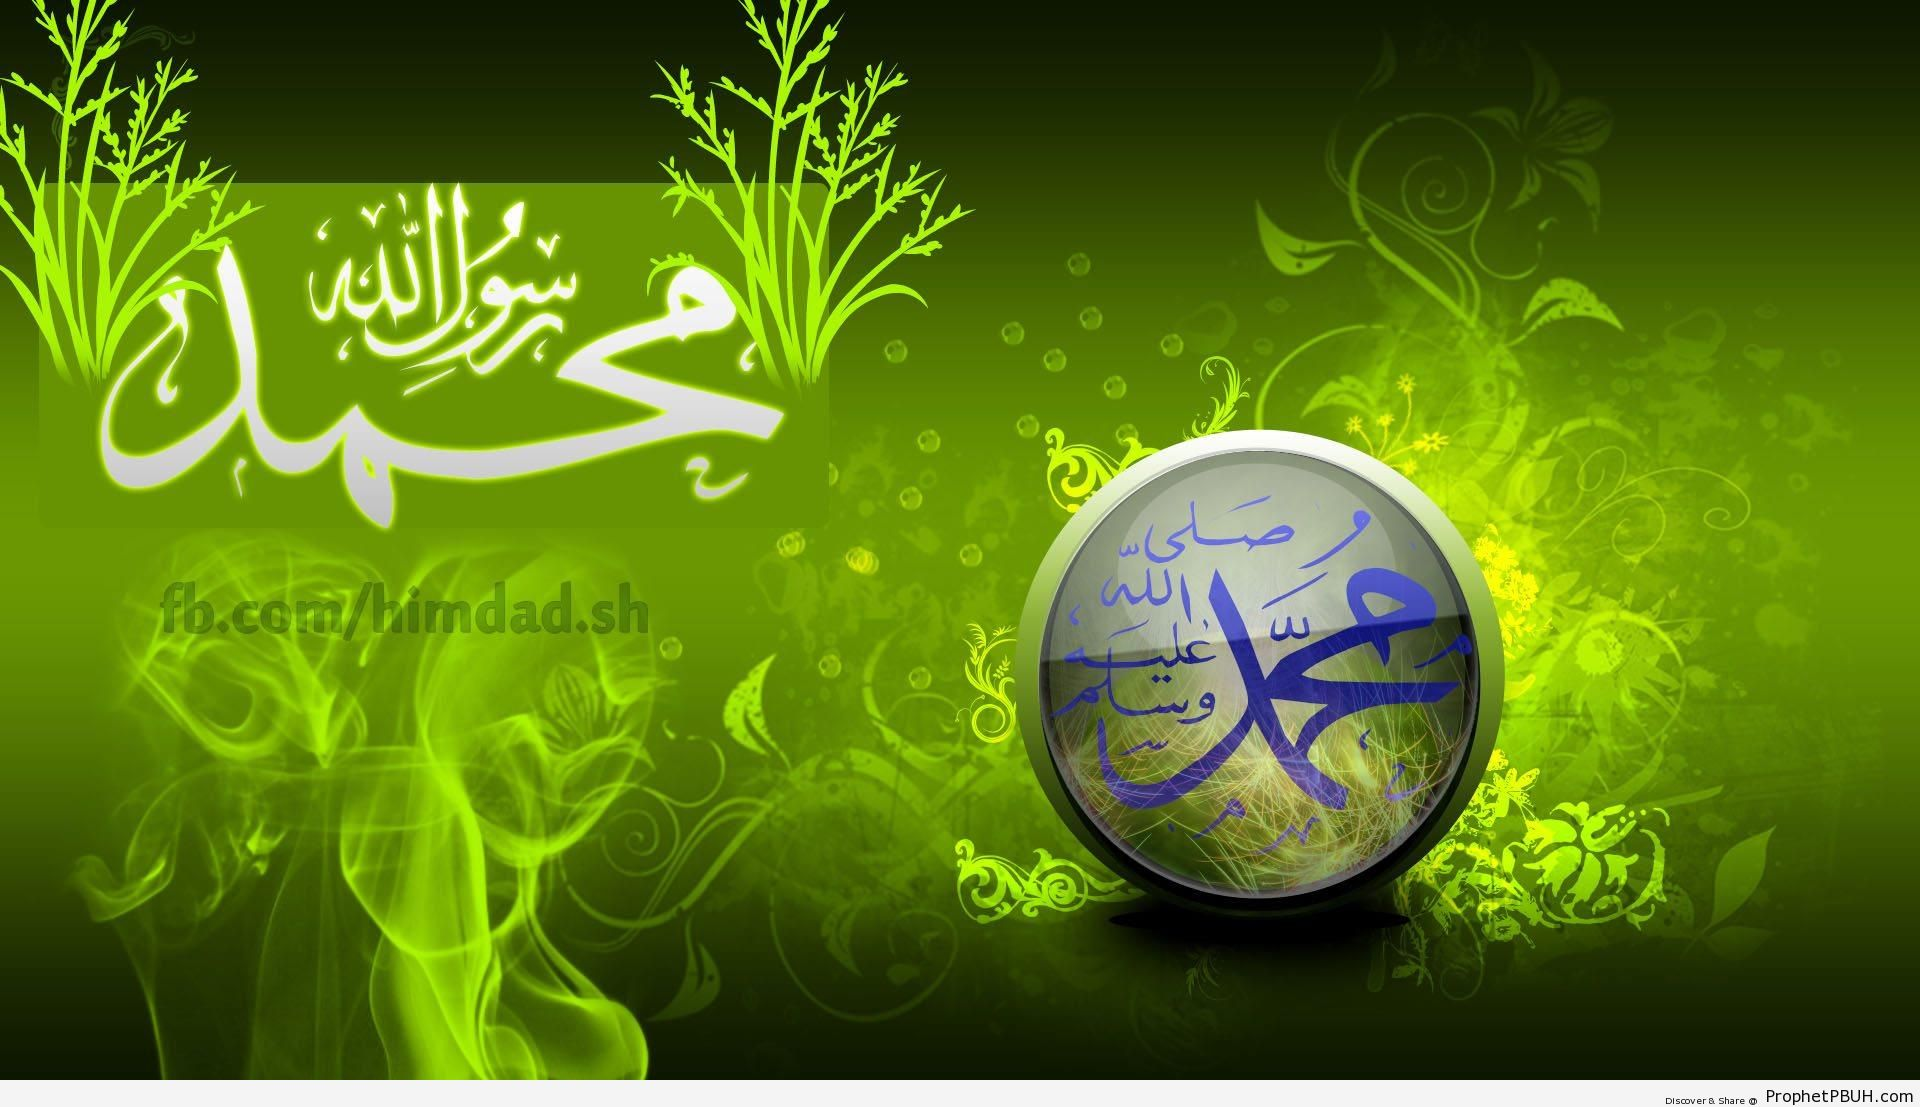 HD Wallpaper (1920 x 1080) with Prophet Muhammad-s Name ï·º - Islamic Calligraphy and Typography